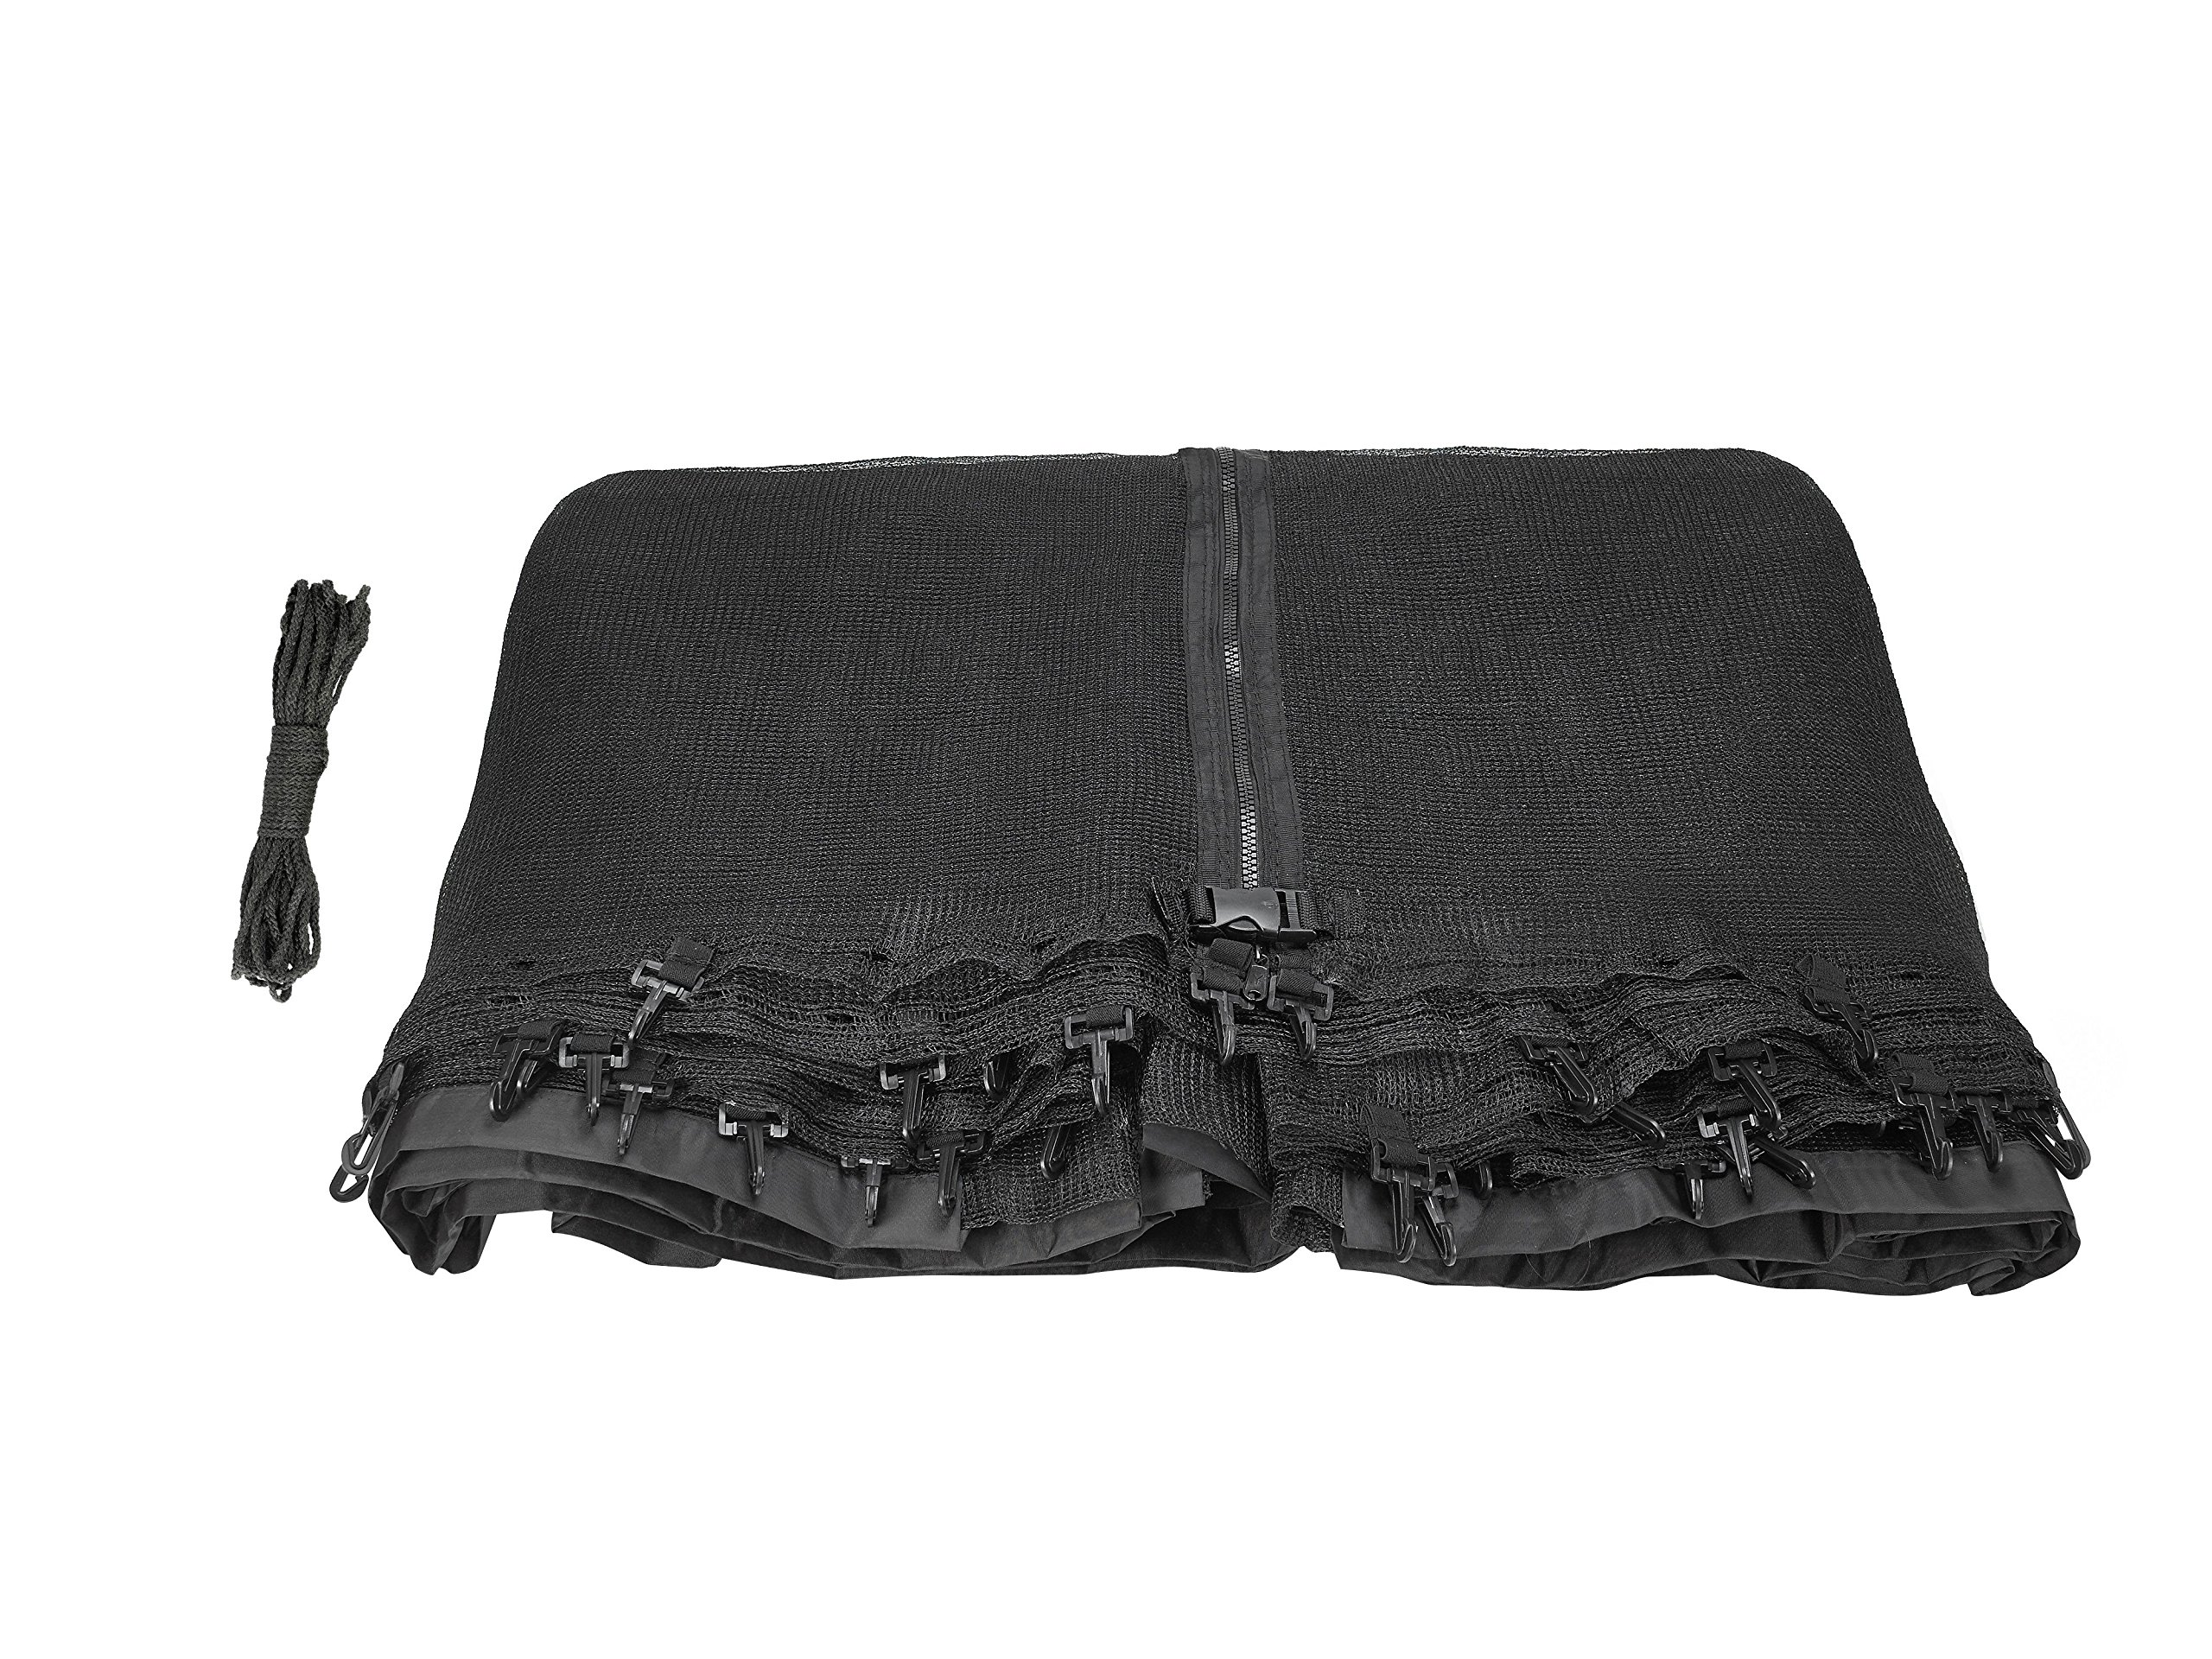 Trampoline Enclosure Net Fits For Sports Power Model # TR1463A-FLEX-FZ by Upper Bounce